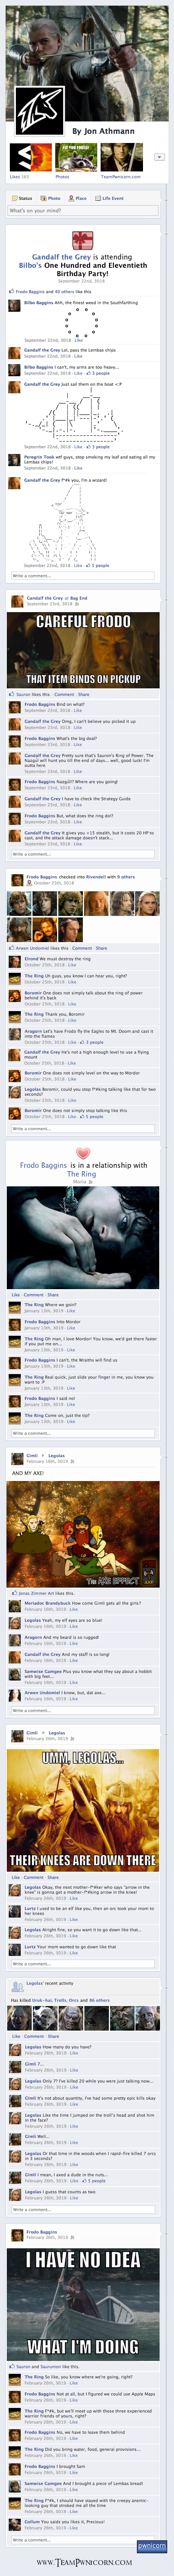 If Lord of the Rings was on Facebook